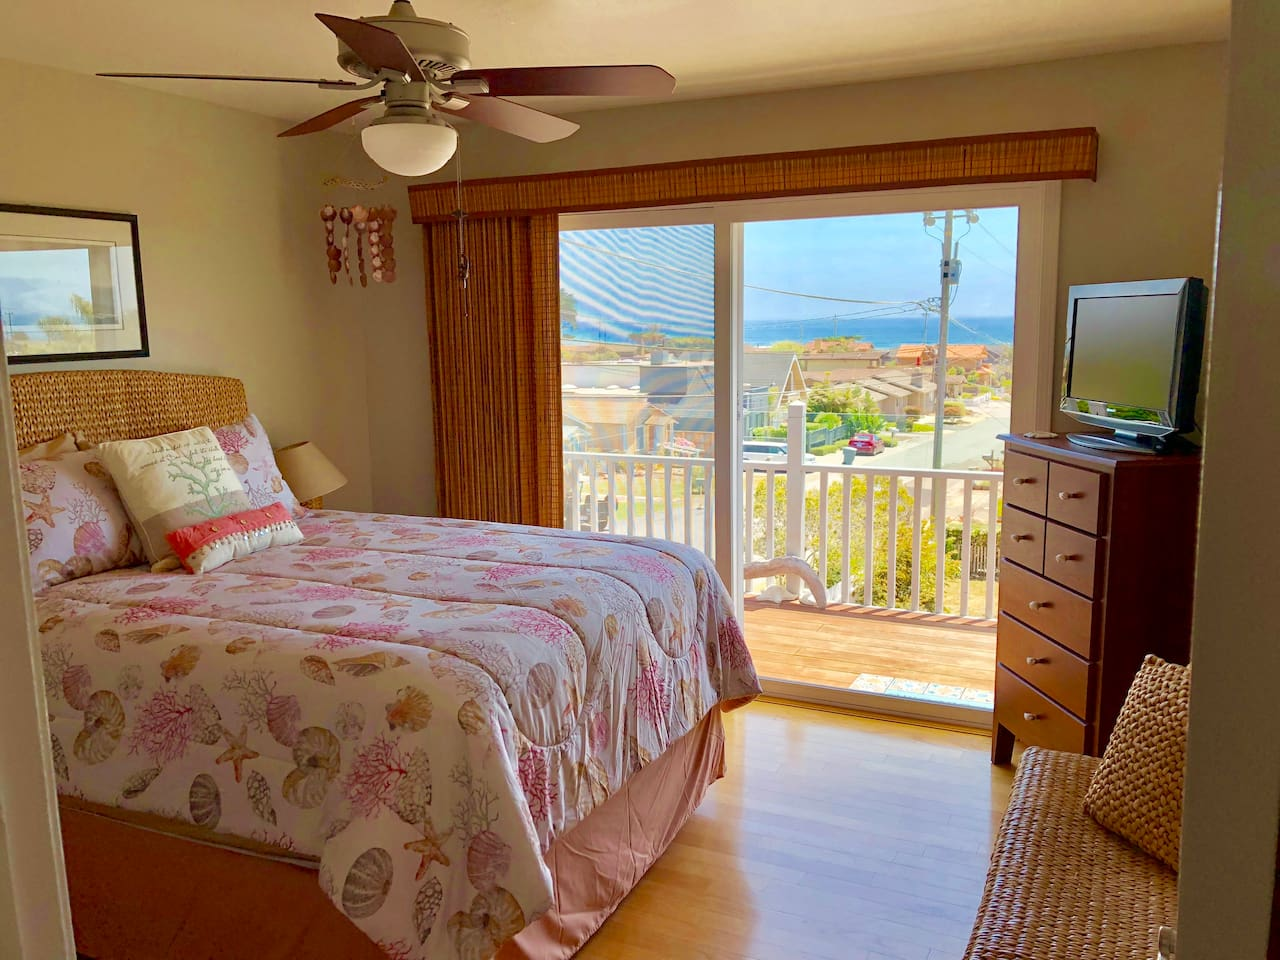 Master bedroom with balcony and ocean view